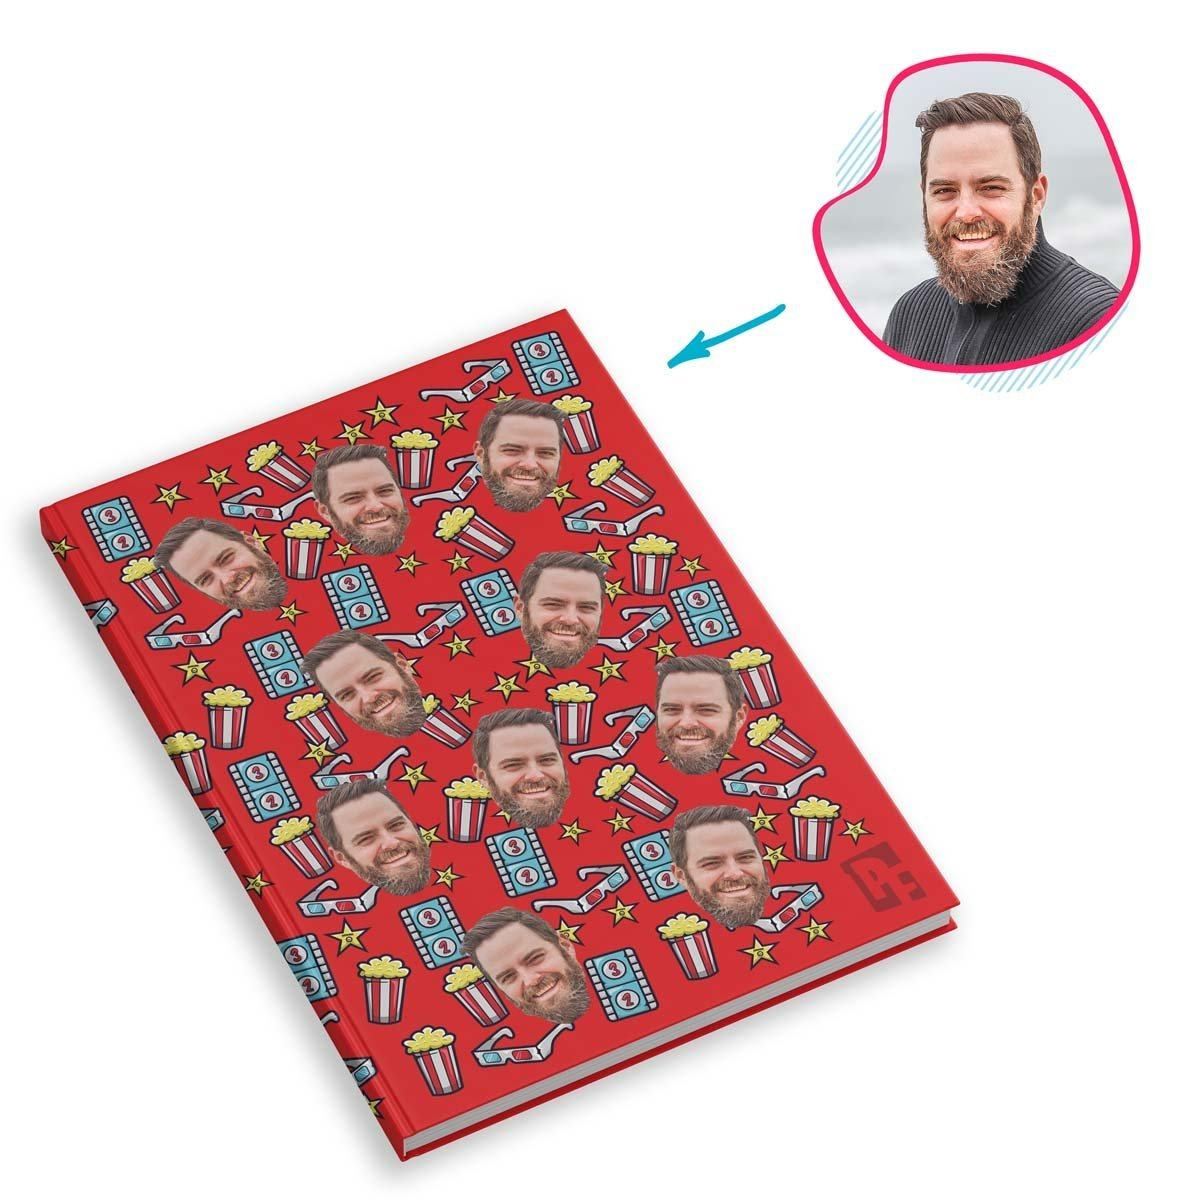 red Movie Notebook personalized with photo of face printed on them